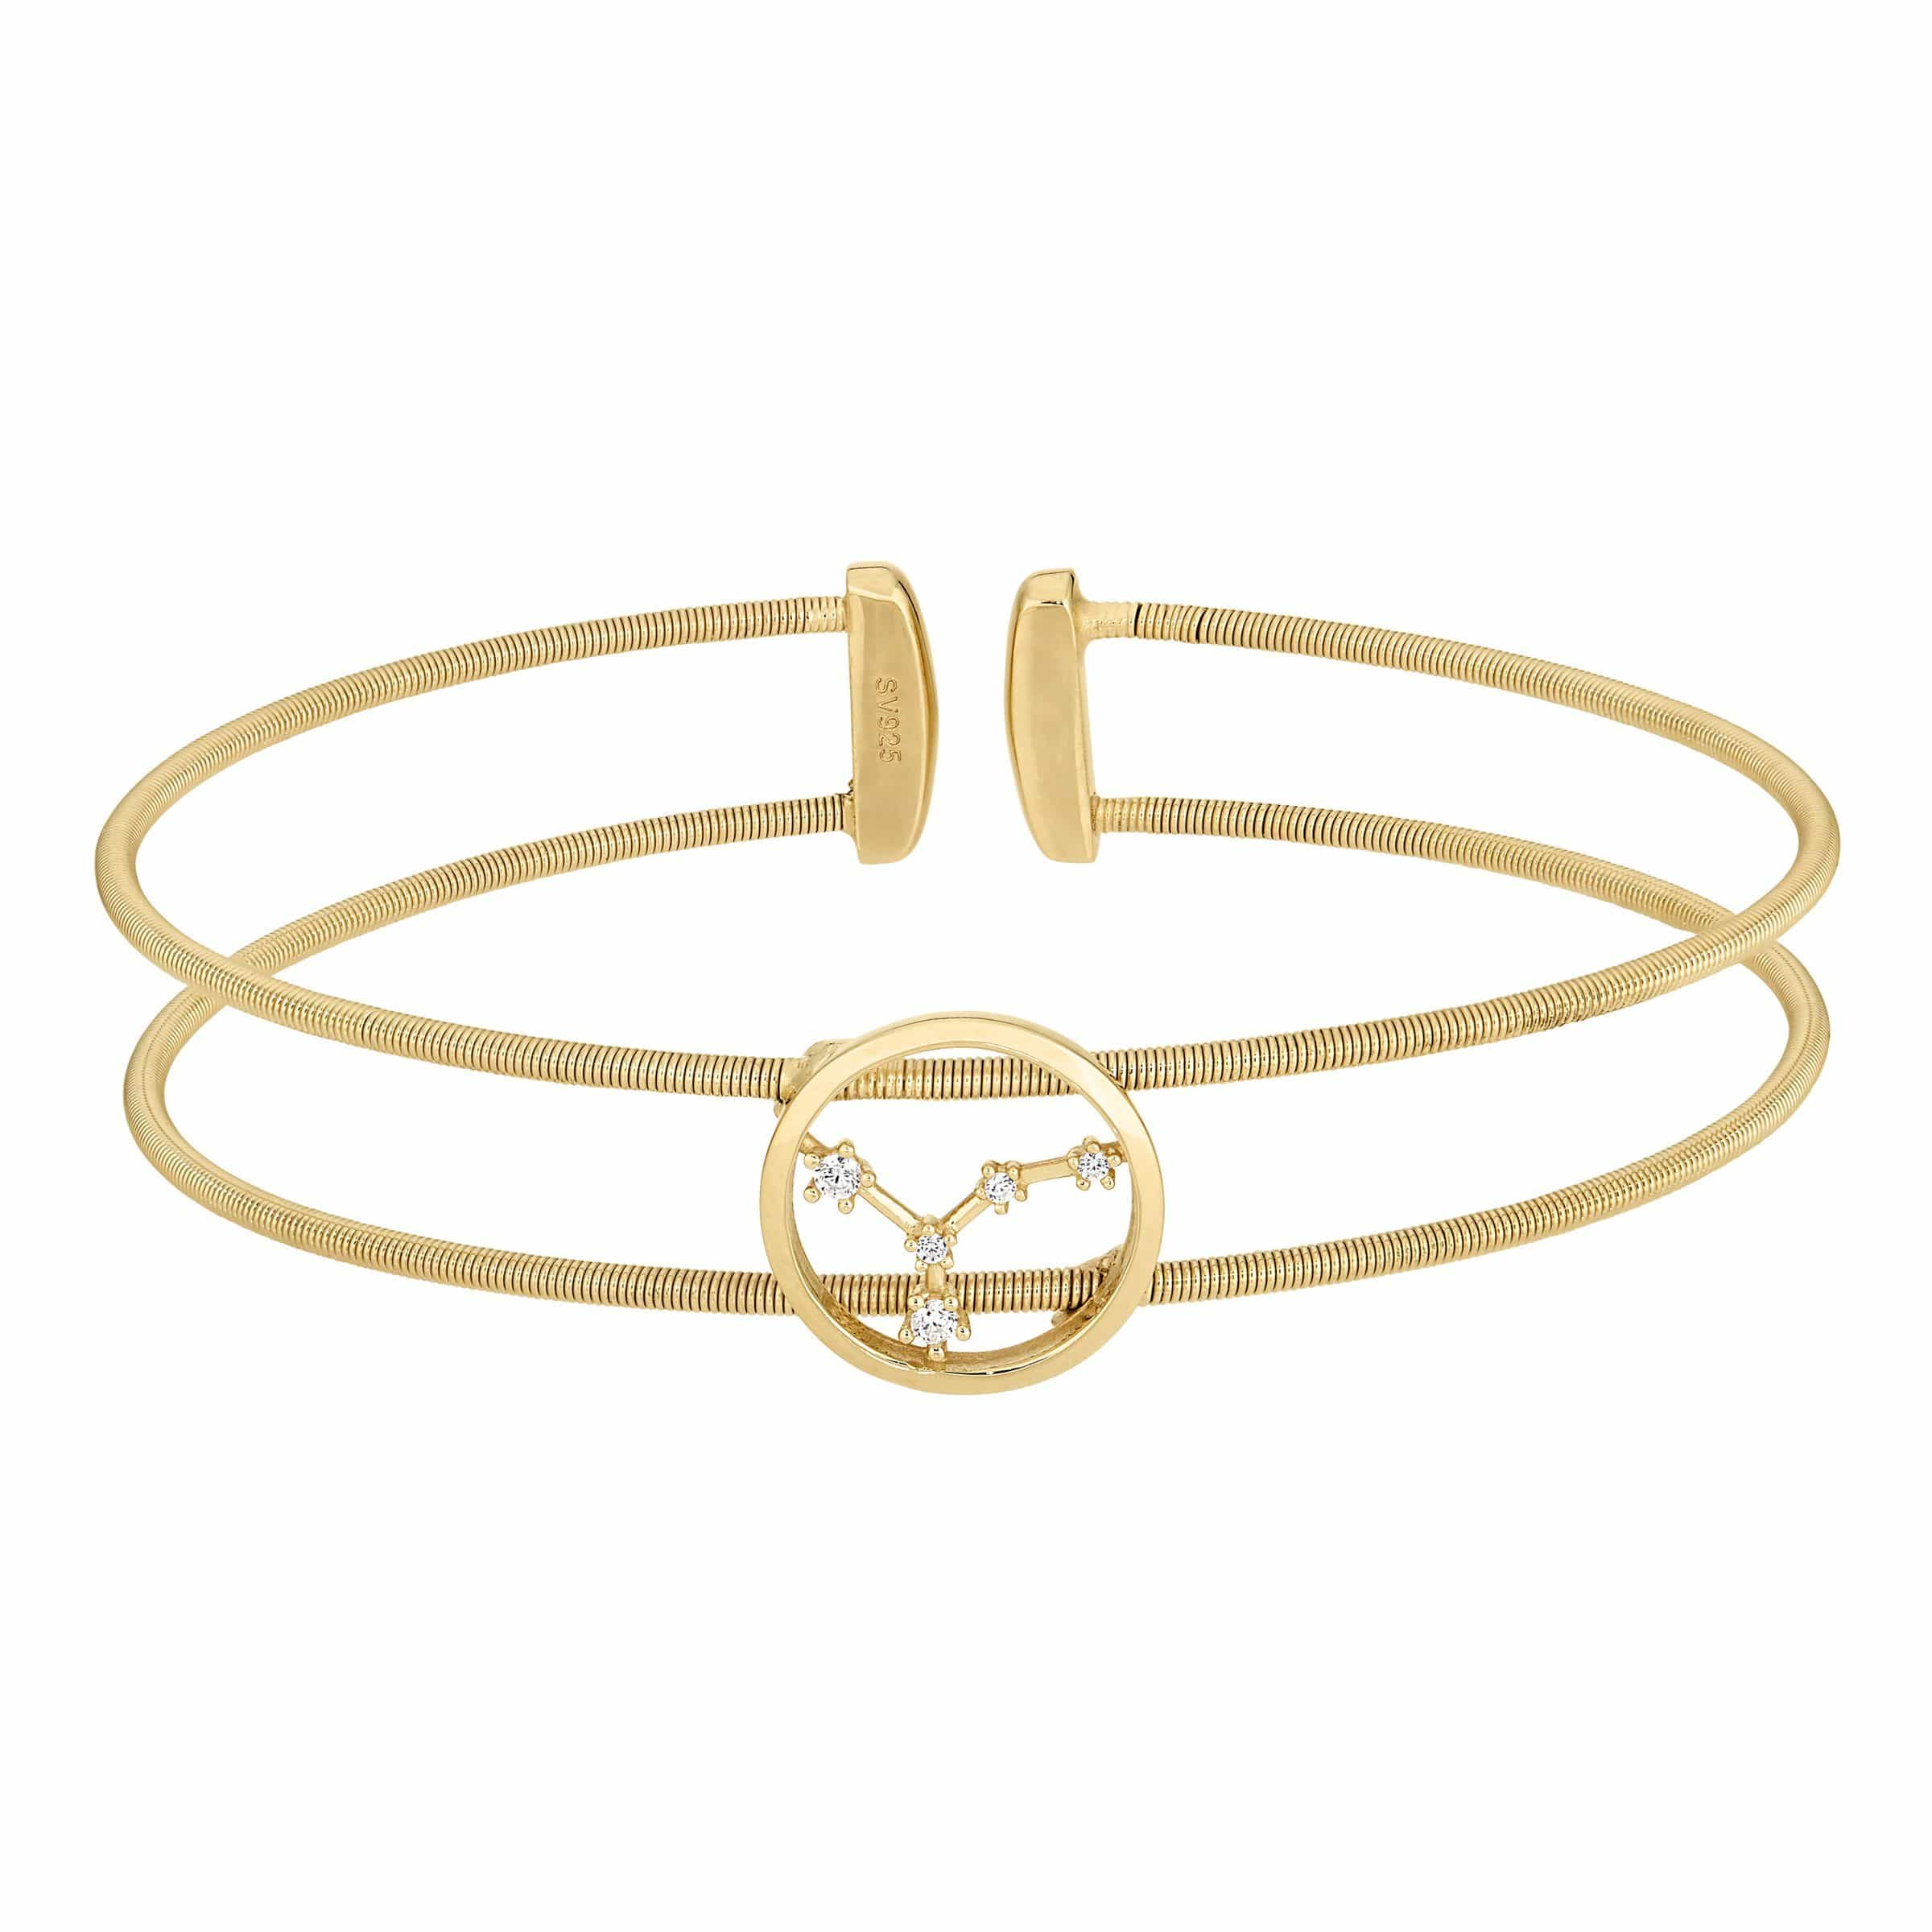 Gold Finish Sterling Silver Cable Cuff Constellation Cancer Bracelet - LL7047B6-G - Kelly Waters